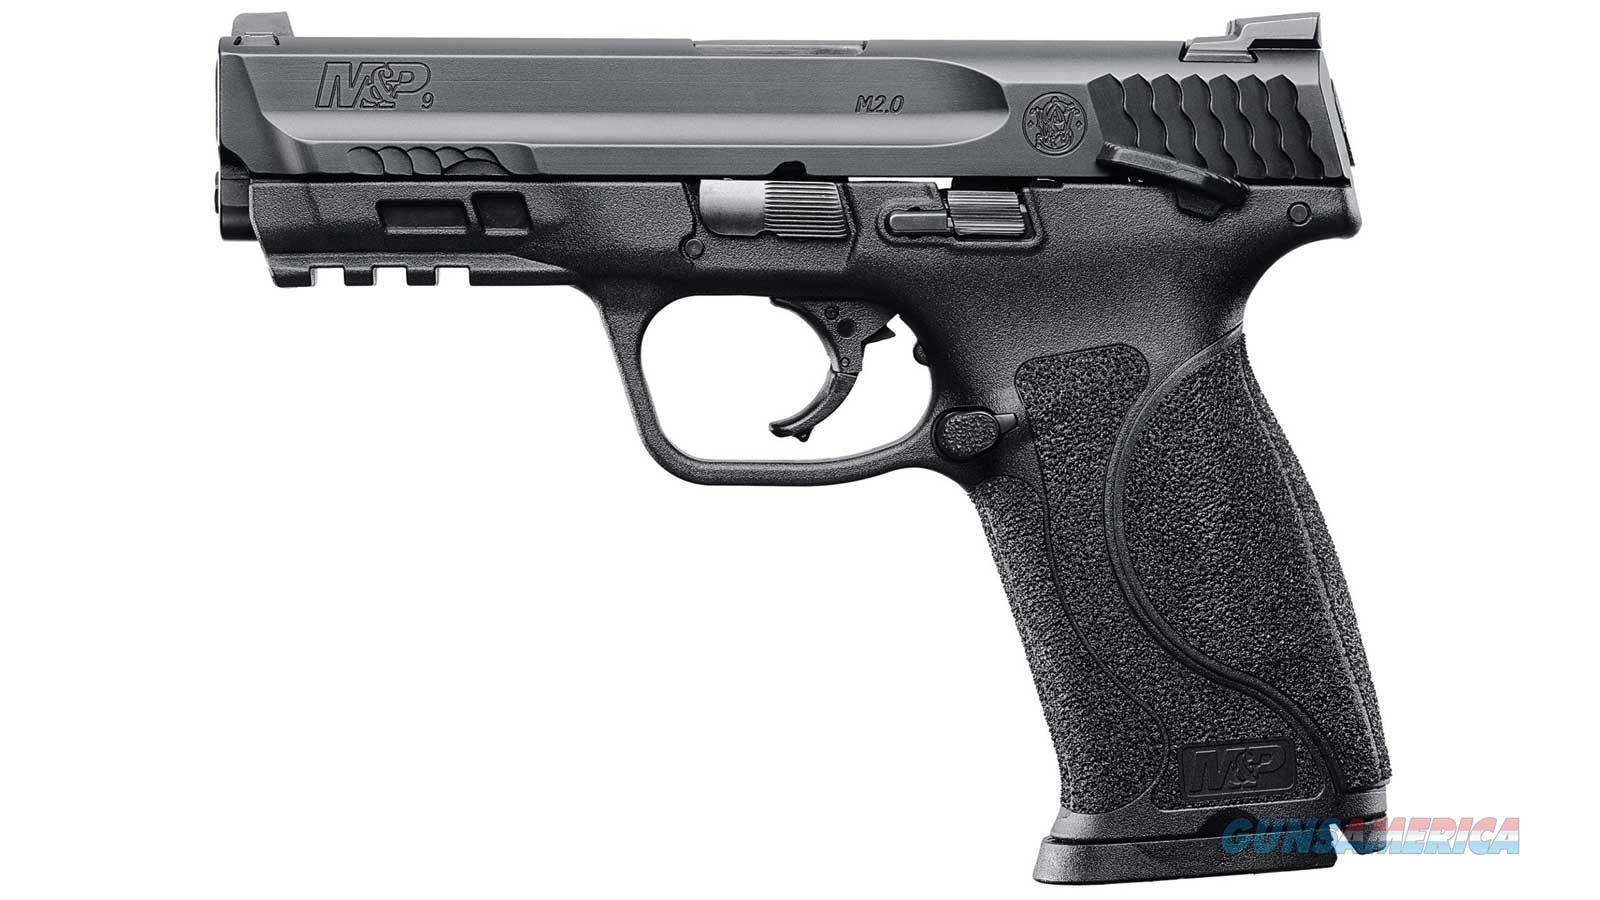 SMITH & WESSON M&P M2.0 - 9MM - W/THUMB SAFETY - BLACK  Guns > Pistols > Smith & Wesson Pistols - Autos > Polymer Frame